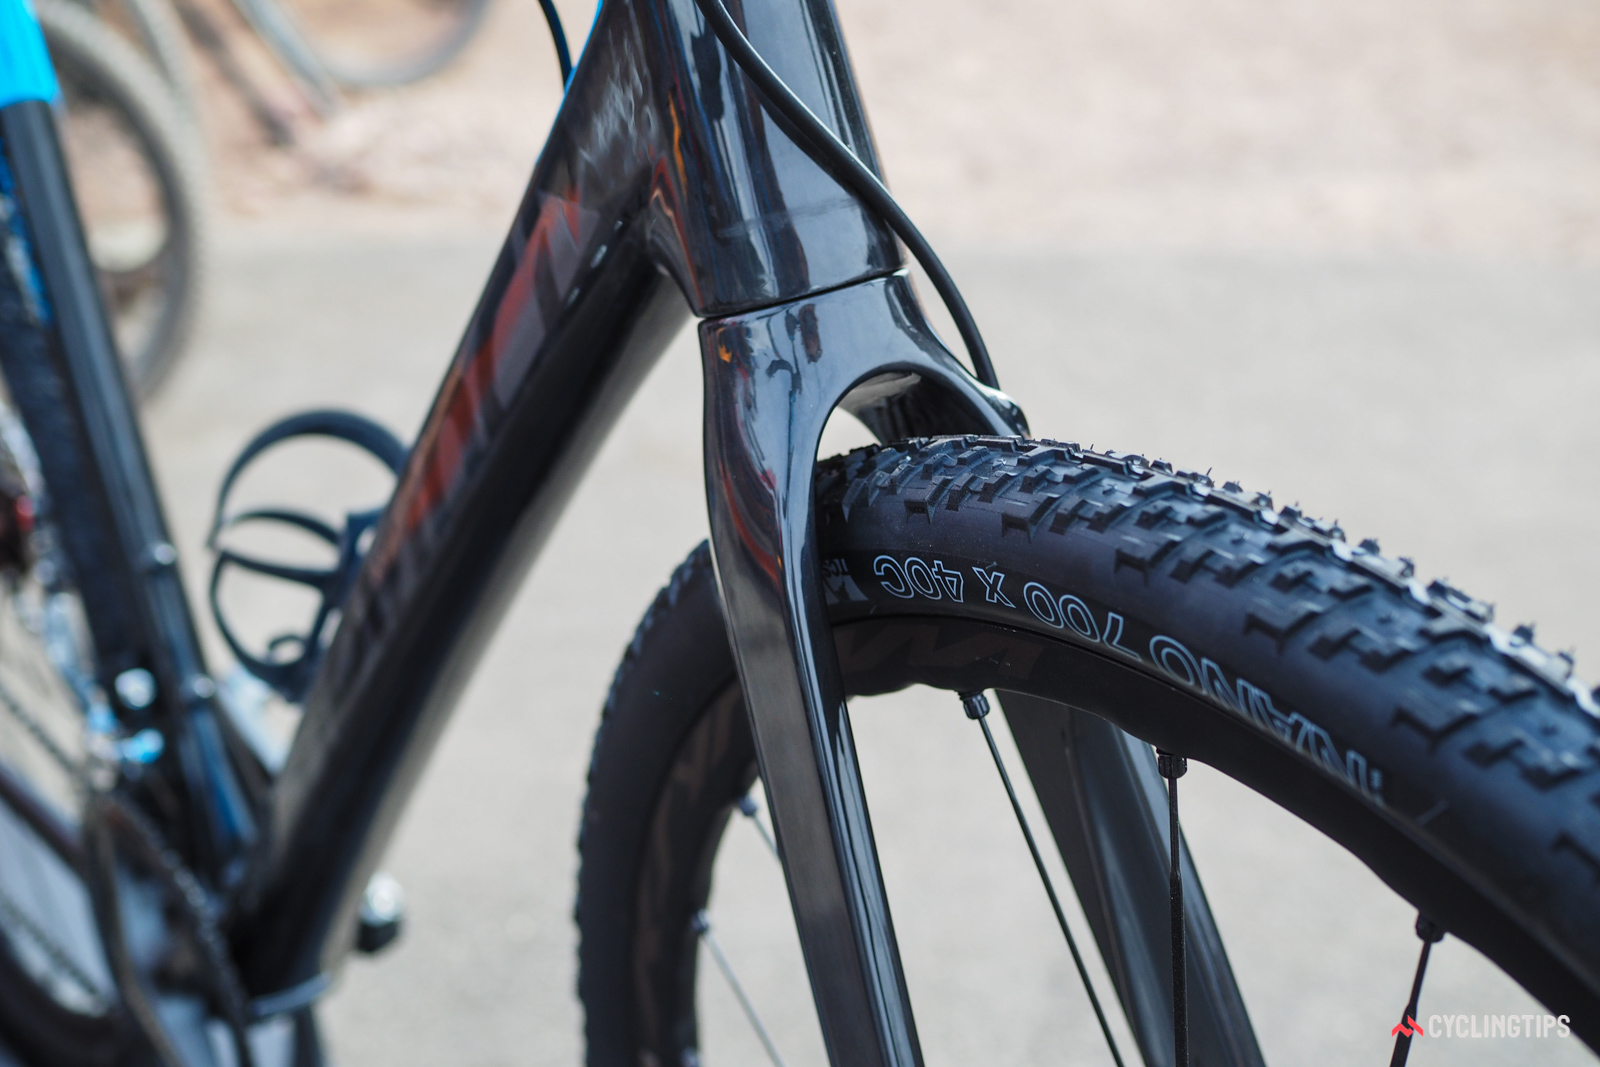 Devinci's new Hatchet will fit tires up to 700x40mm wide.